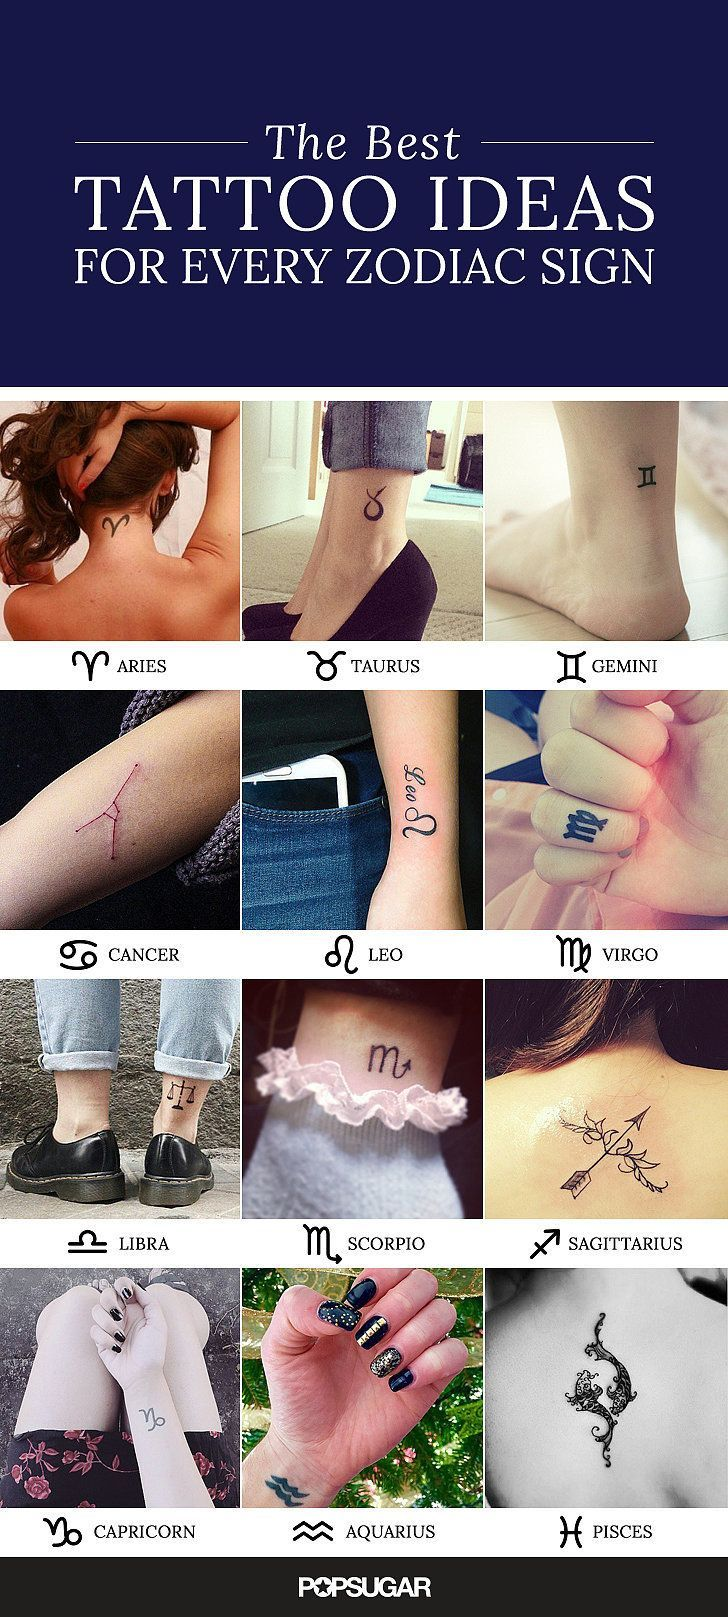 Do you read your horoscope every day? Are you always judging people based on their astrological signs? If you're looking to get new ink and totally into studying the stars, chances are a zodiac tattoo would be perfect for you. We have selected a beautiful design for every sign in the year. Check them out to get inspired!